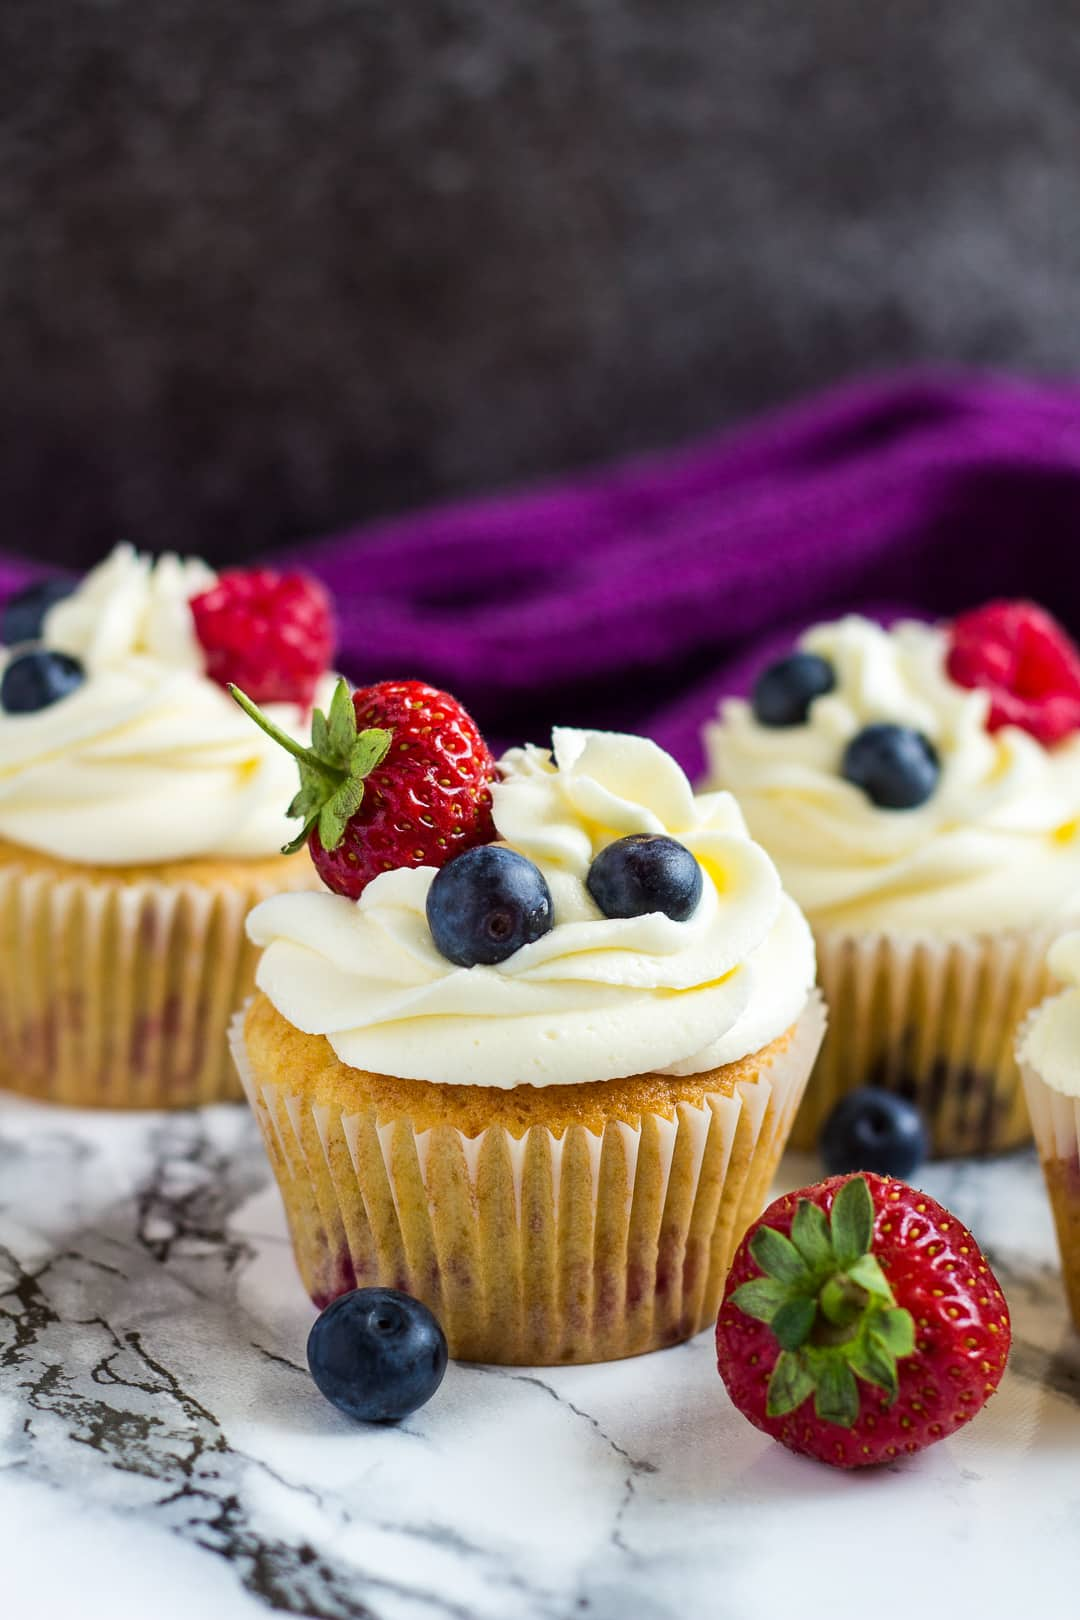 Frosted summer berry cupcakes garnished strawberries and blueberries.